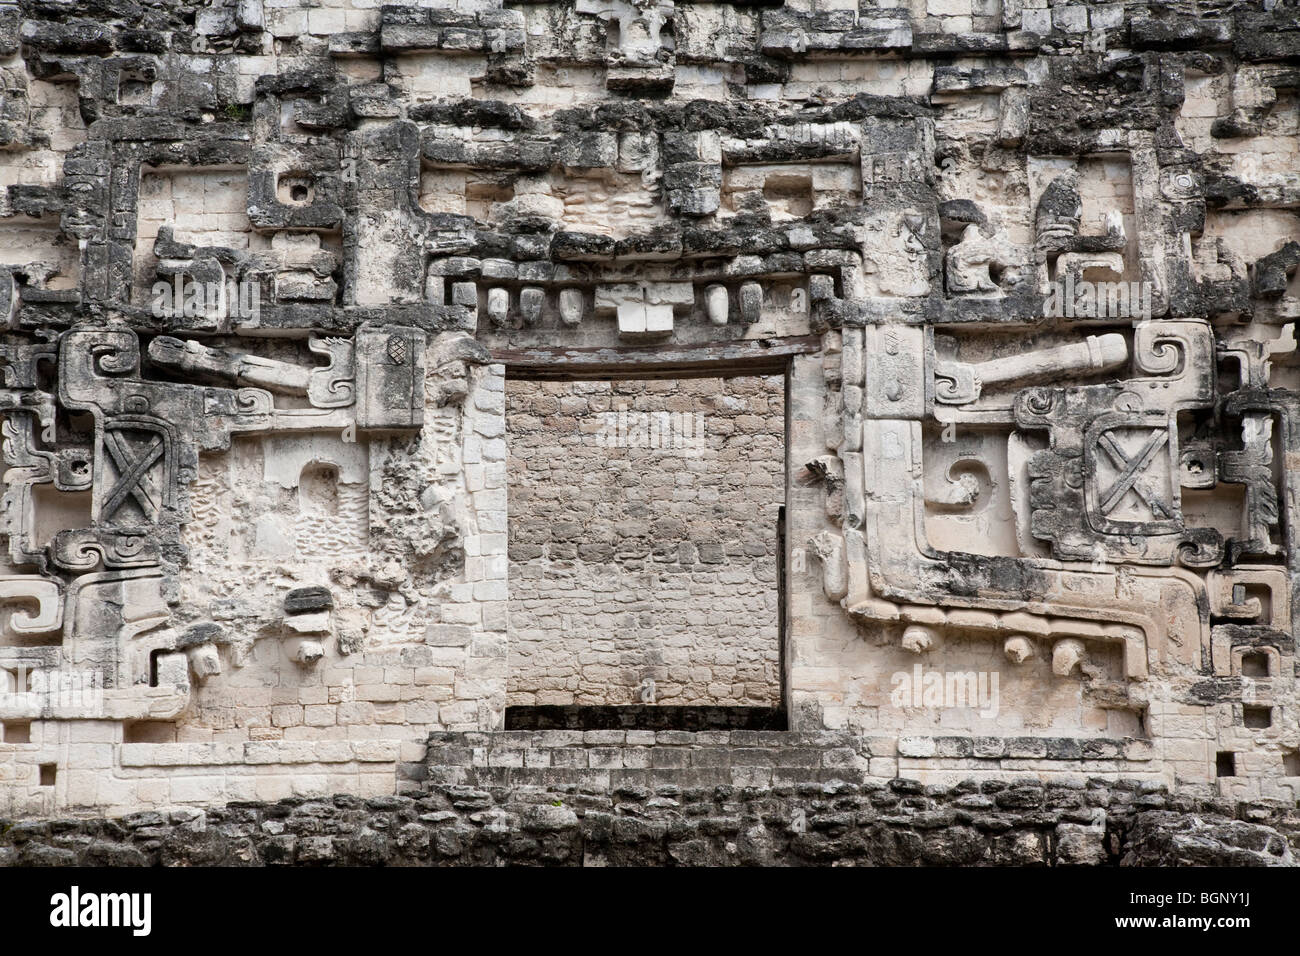 Structure III. Hormiguero Maya Ruins archaeology site, Campeche Mexico. - Stock Image